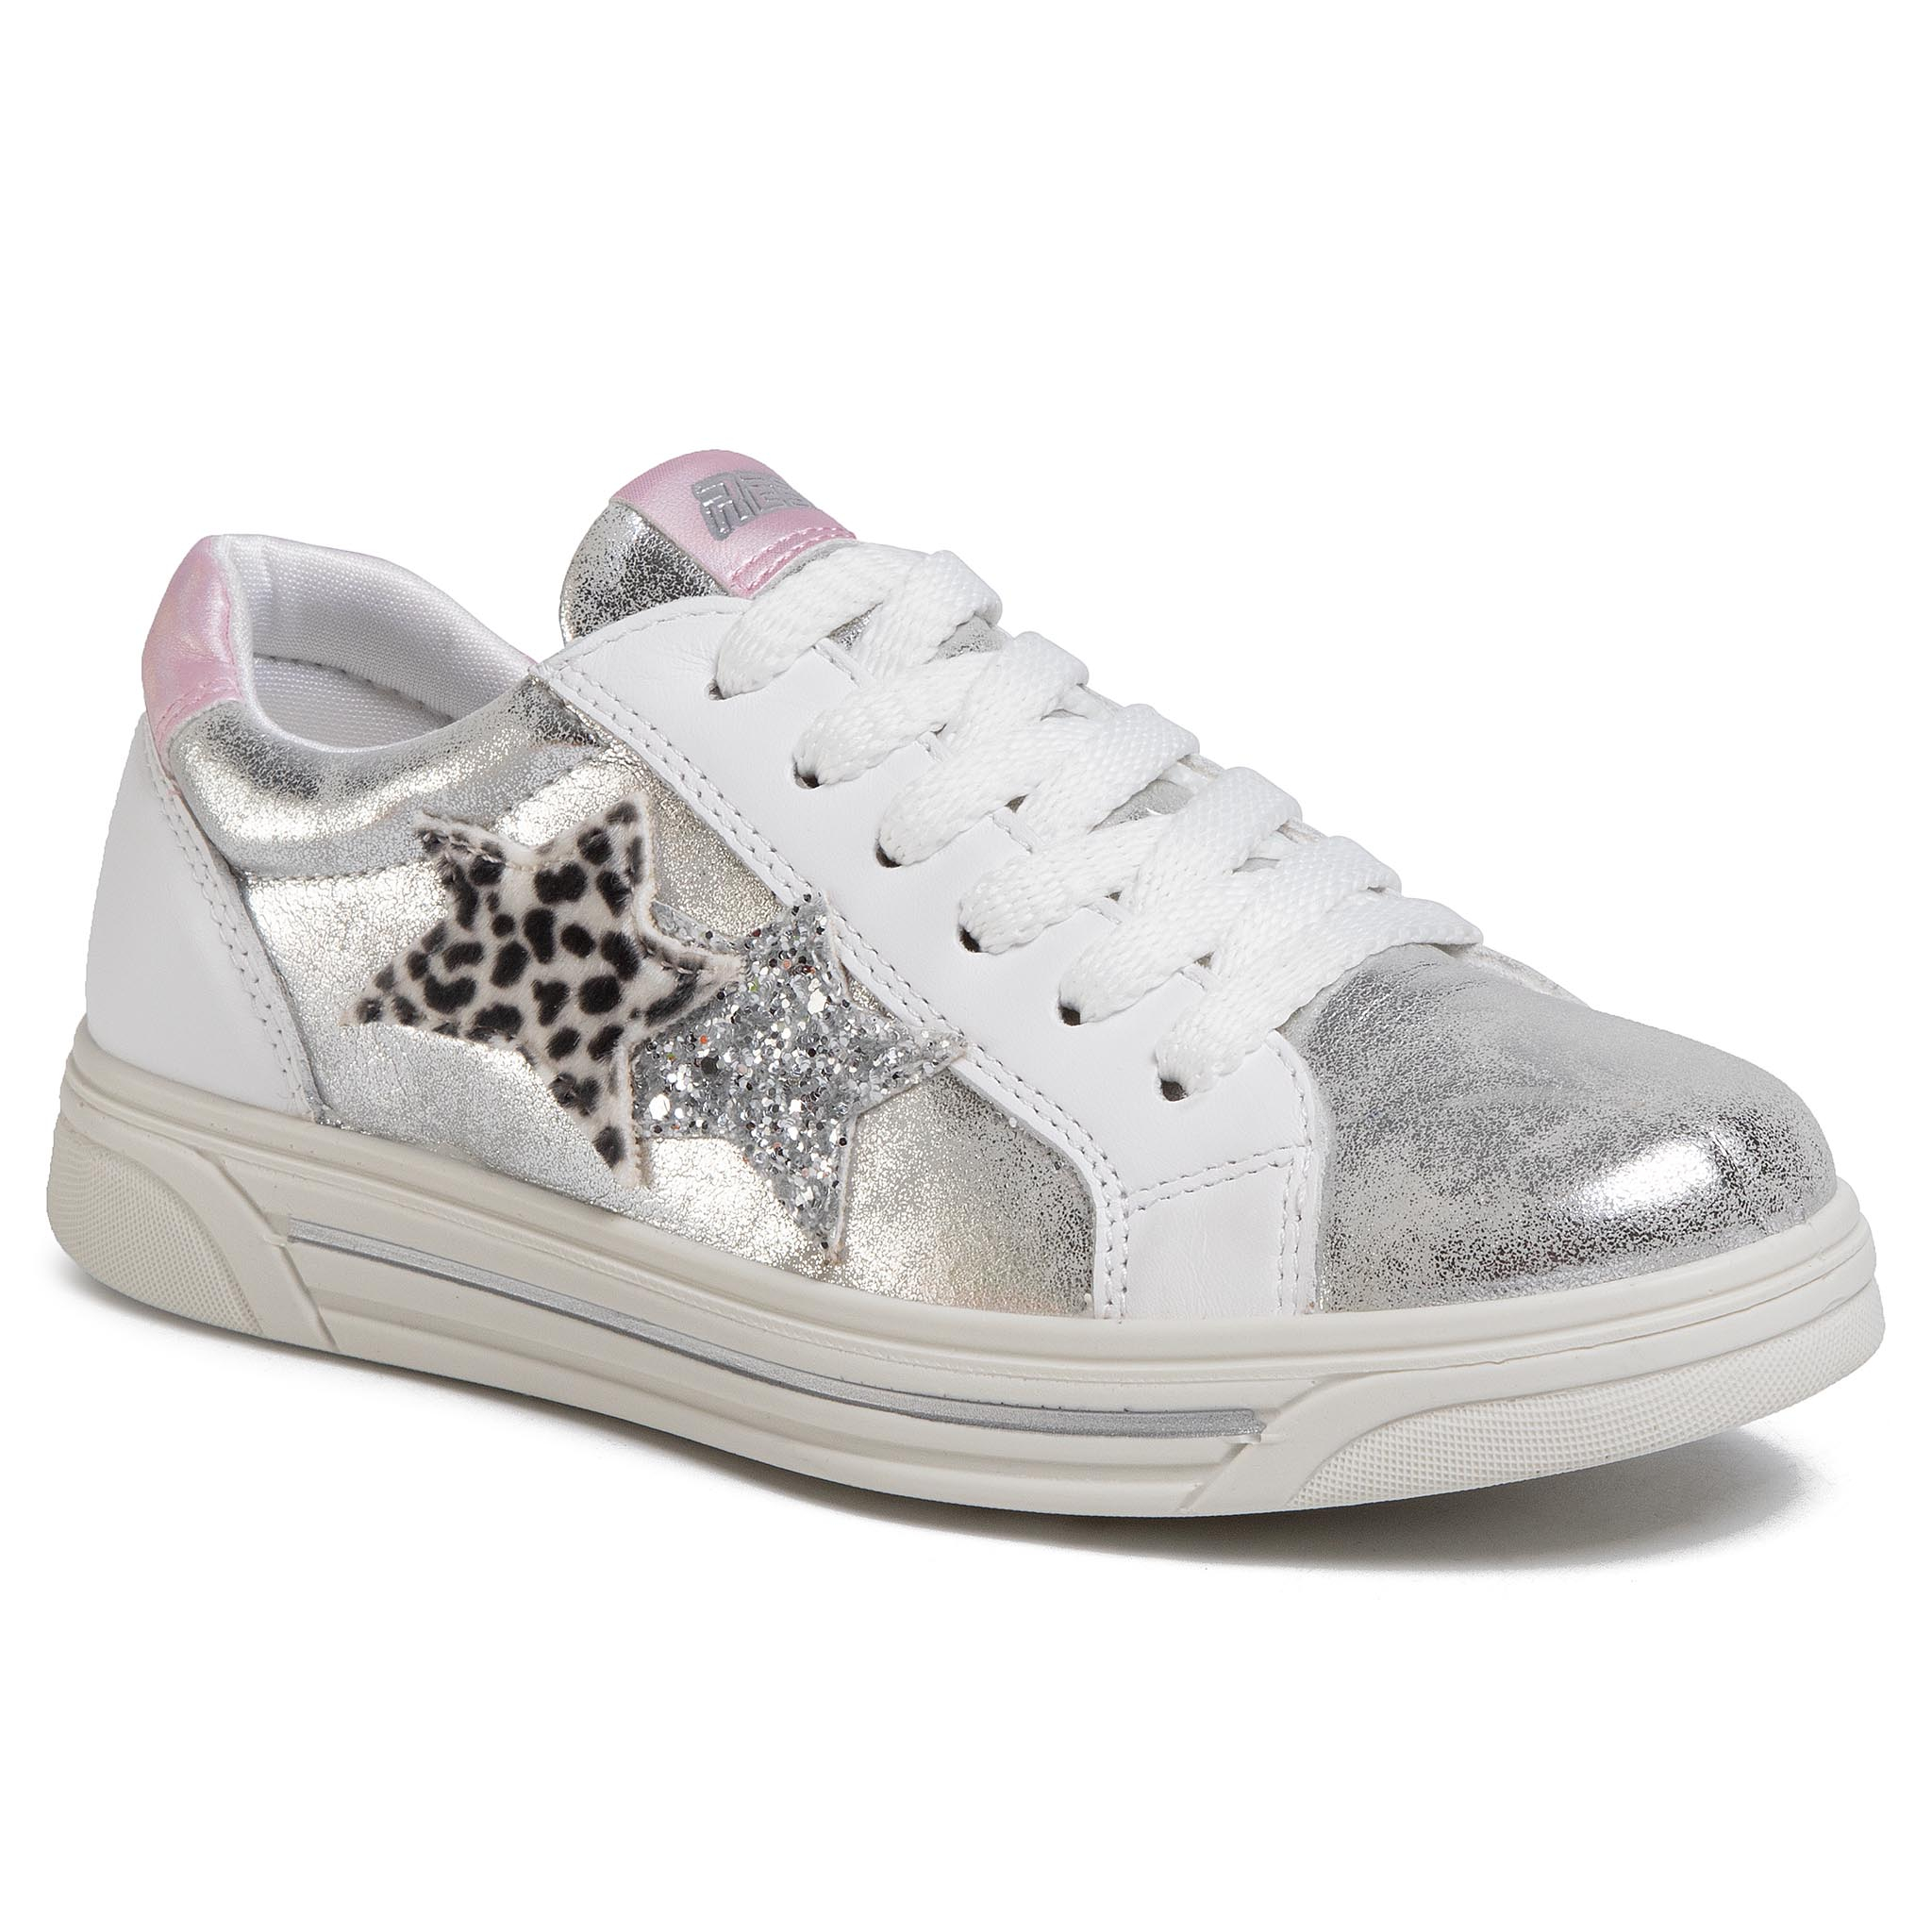 Sneakers IMAC - 530391 S Silver/Pink 01000/008